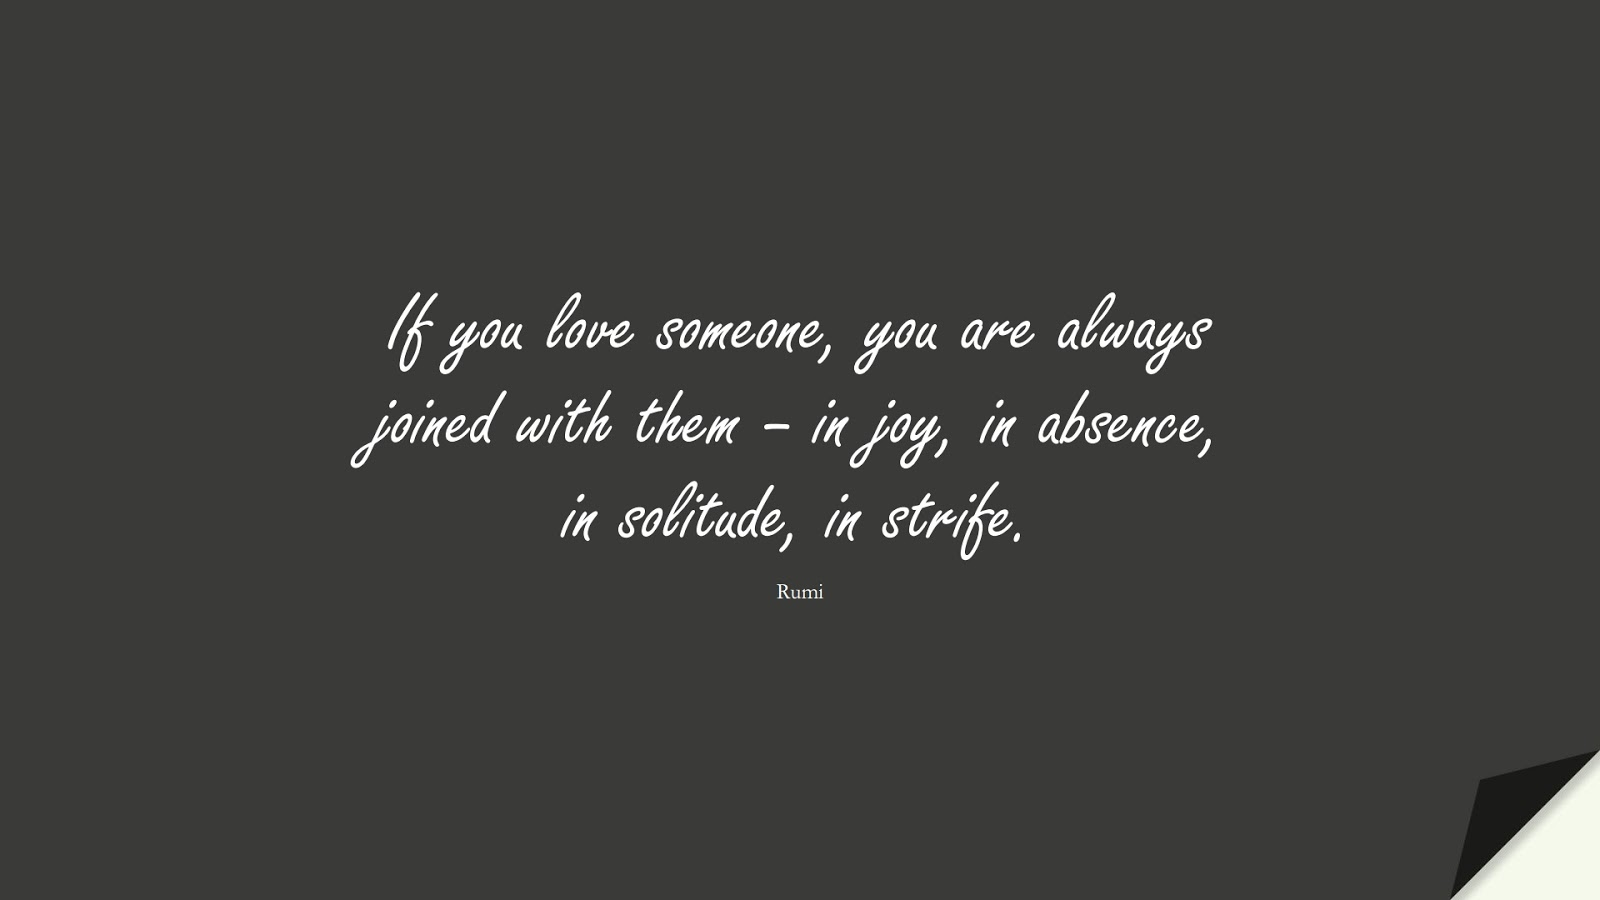 If you love someone, you are always joined with them – in joy, in absence, in solitude, in strife. (Rumi);  #RumiQuotes